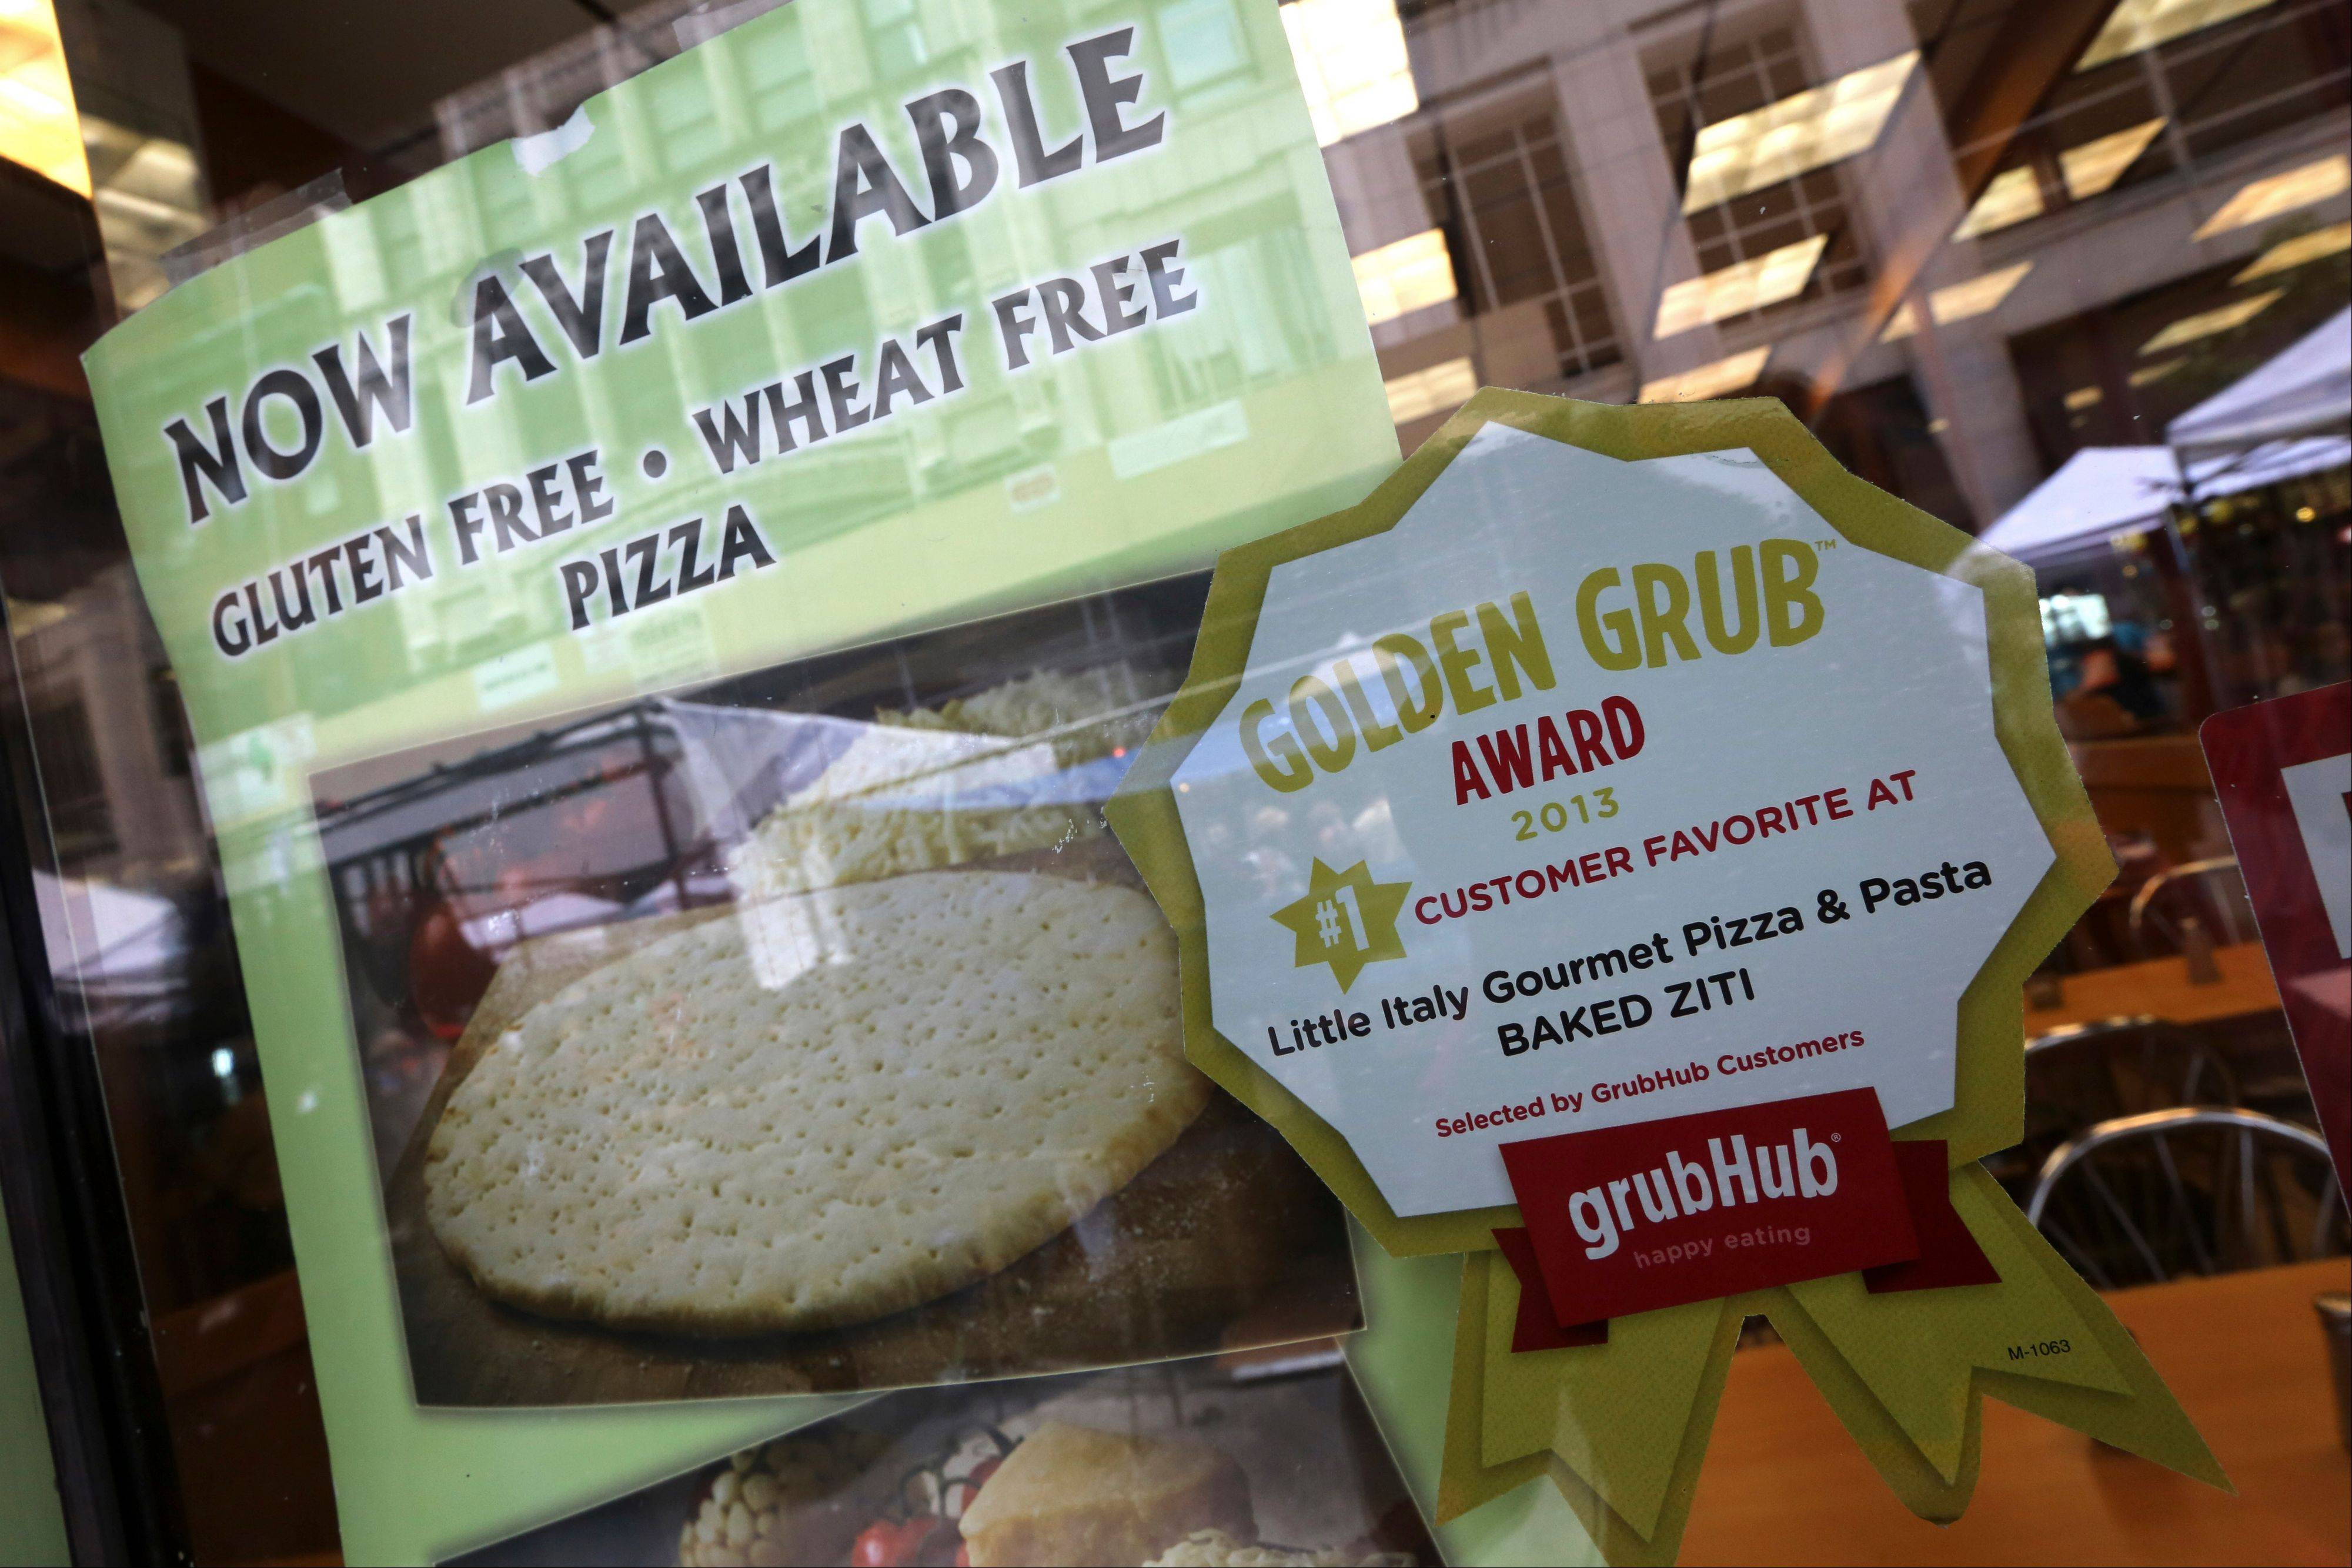 A GrubHub sticker is displayed next to photographs of items on the menu in the window of a restaurant in New York's Times Square.